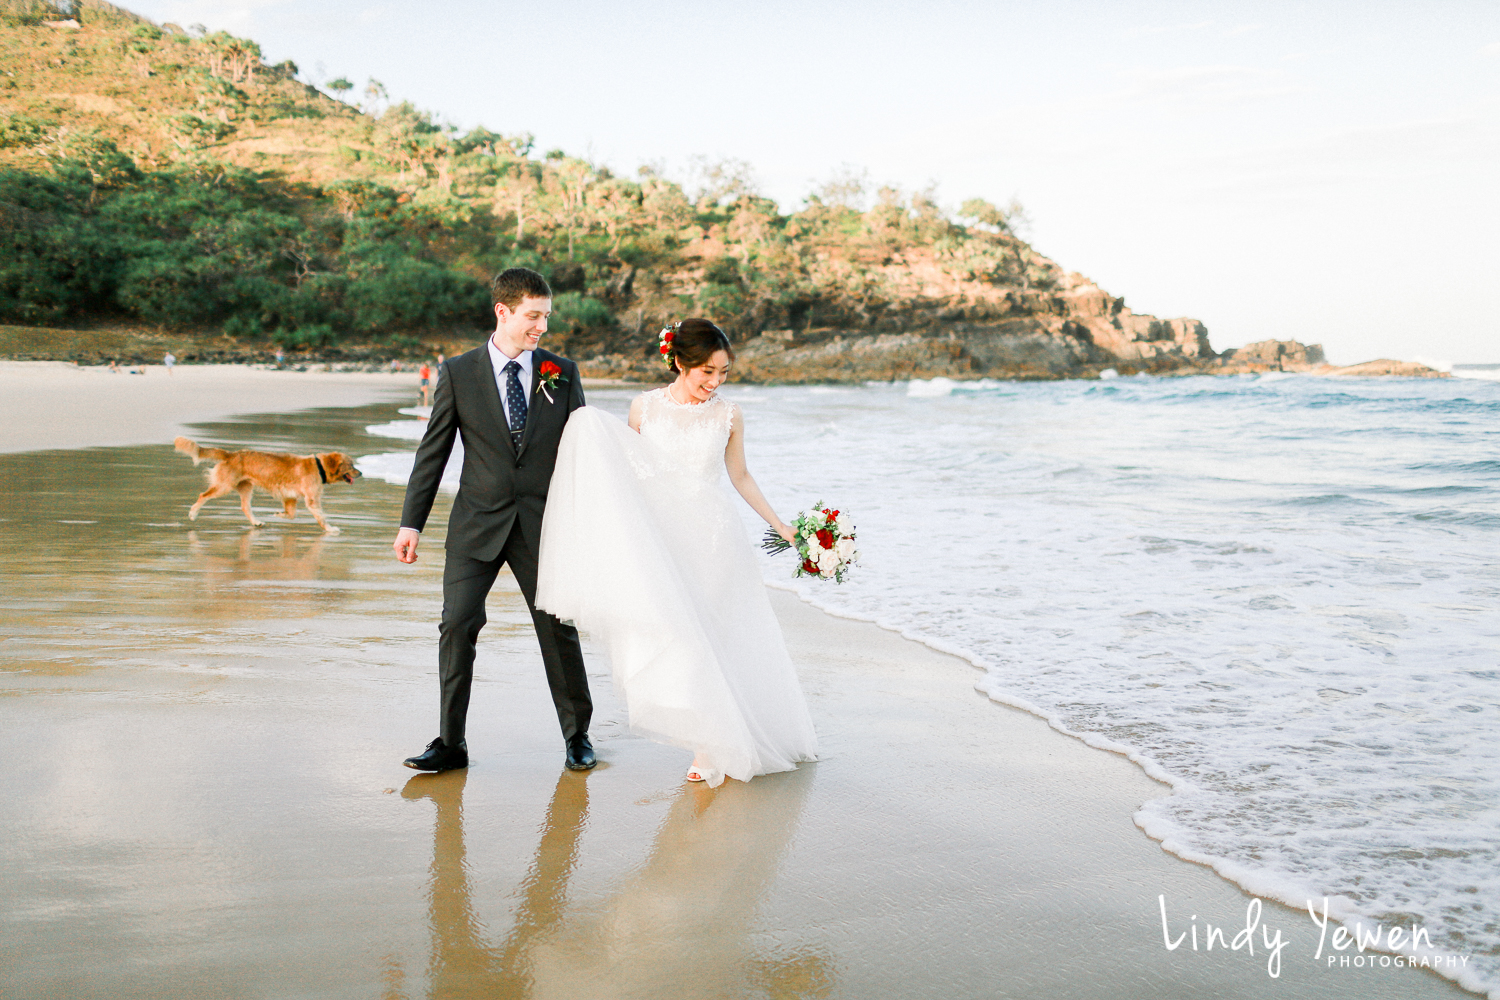 Sunshine-Beach-Weddings-Dimitrije-Maria 225.jpg